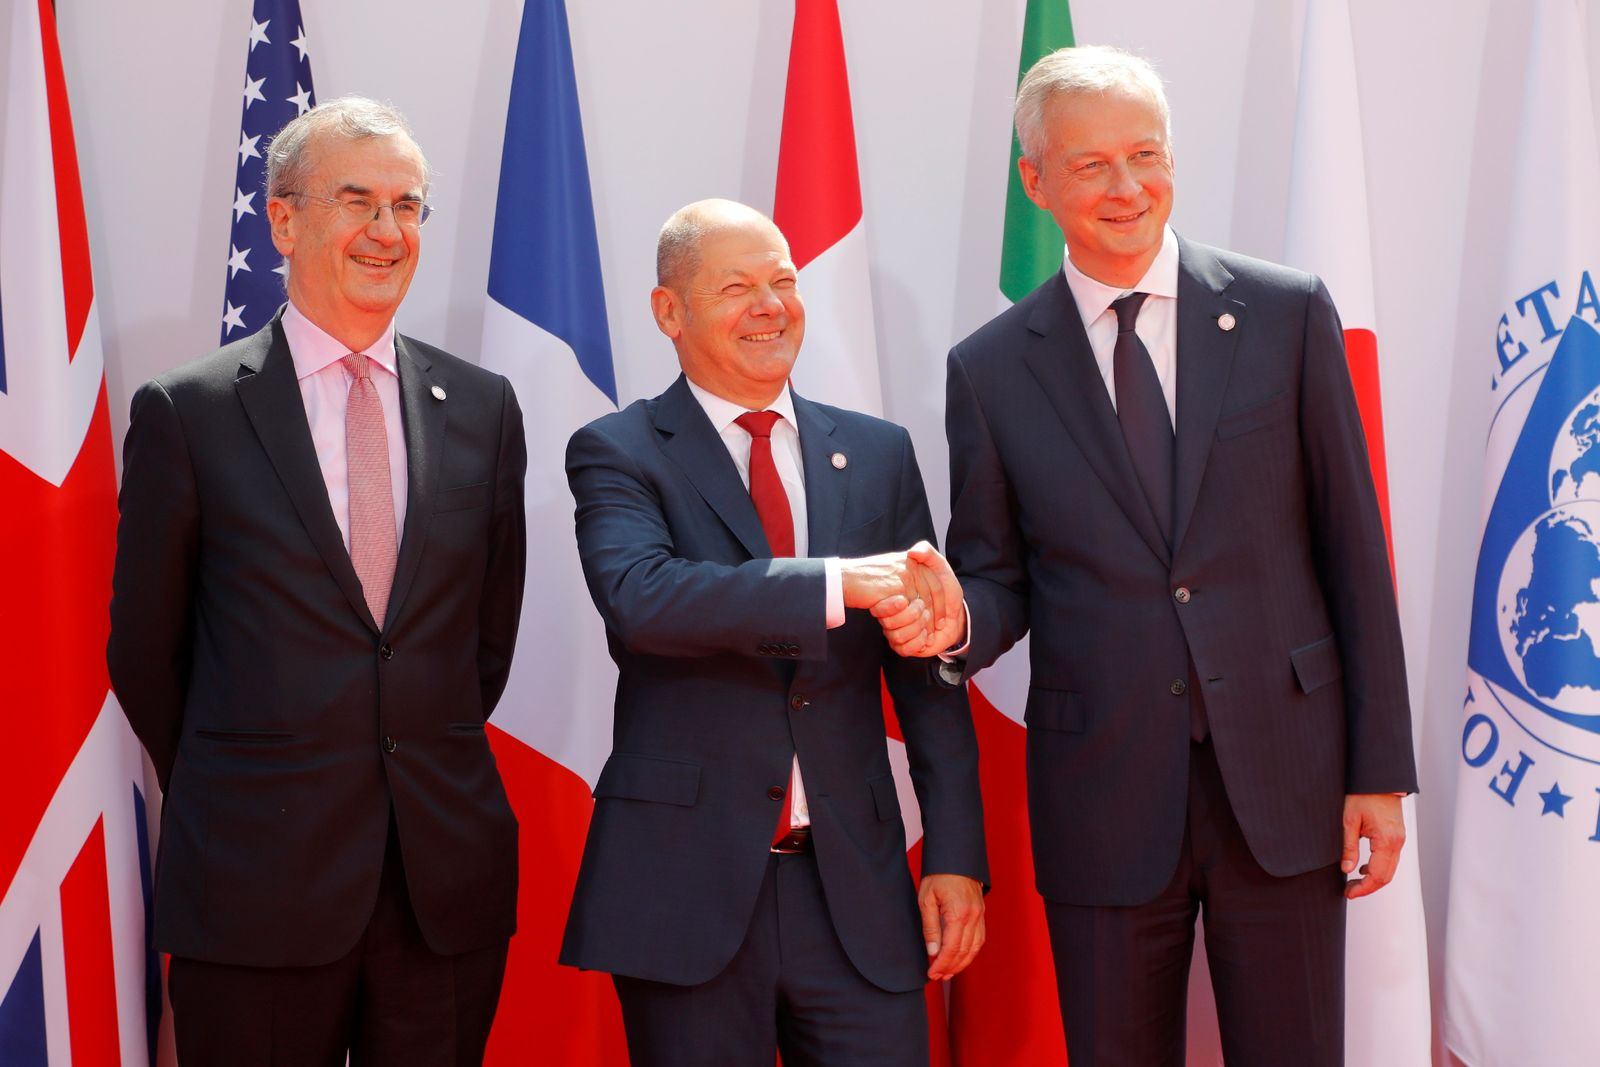 French Finance Minister Bruno Le Maire, right, welcomes German Finance Minister Olaf Scholz, center, with Governor of the Bank of France Francois Villeroy de Galhau, at the G-7 Finance Wednesday July 17, 2019. (AP Photo/Michel Euler)